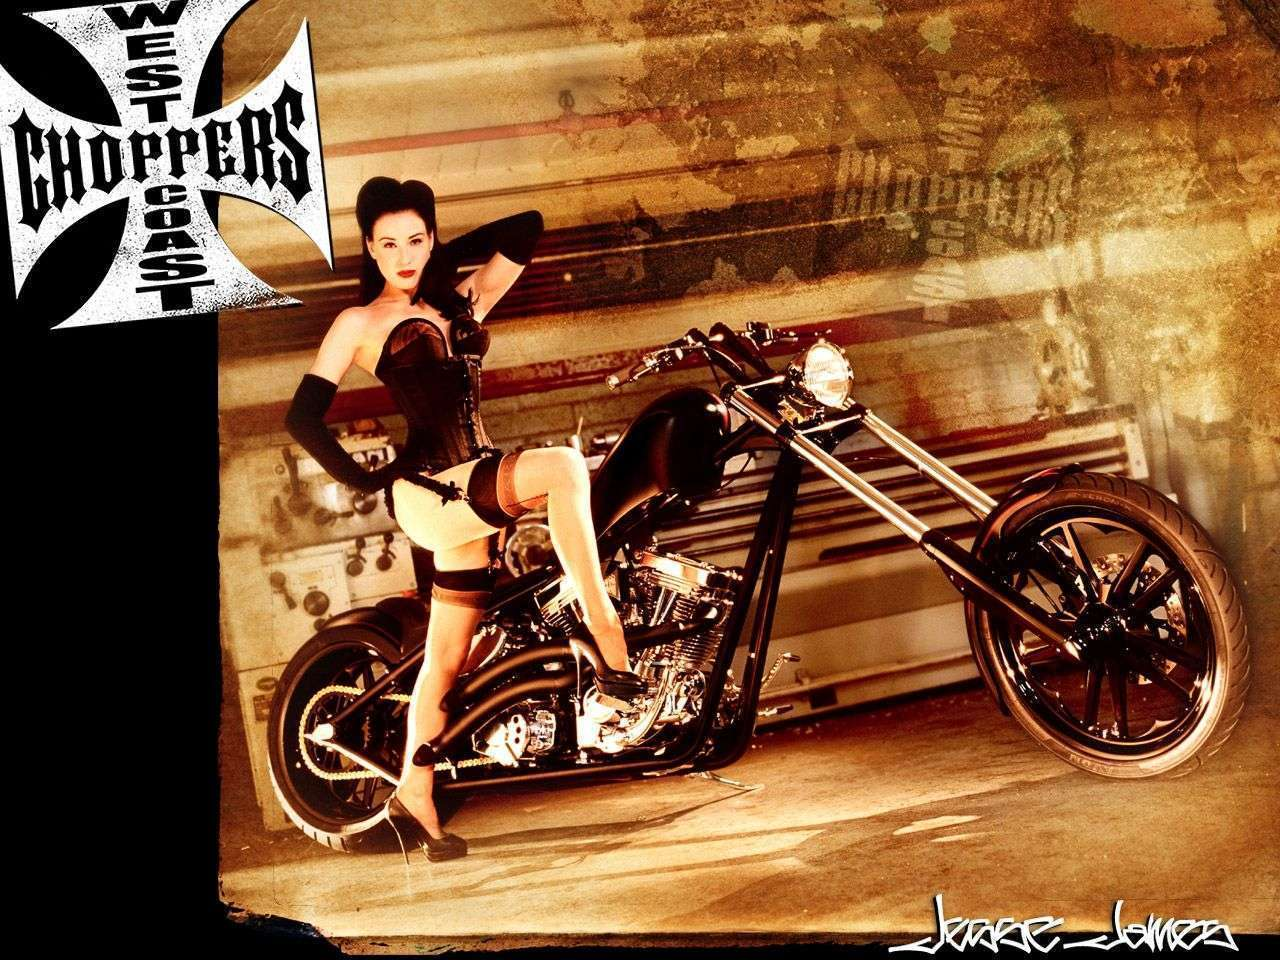 West Coast Choppers Wallpaper WallpaperSafari